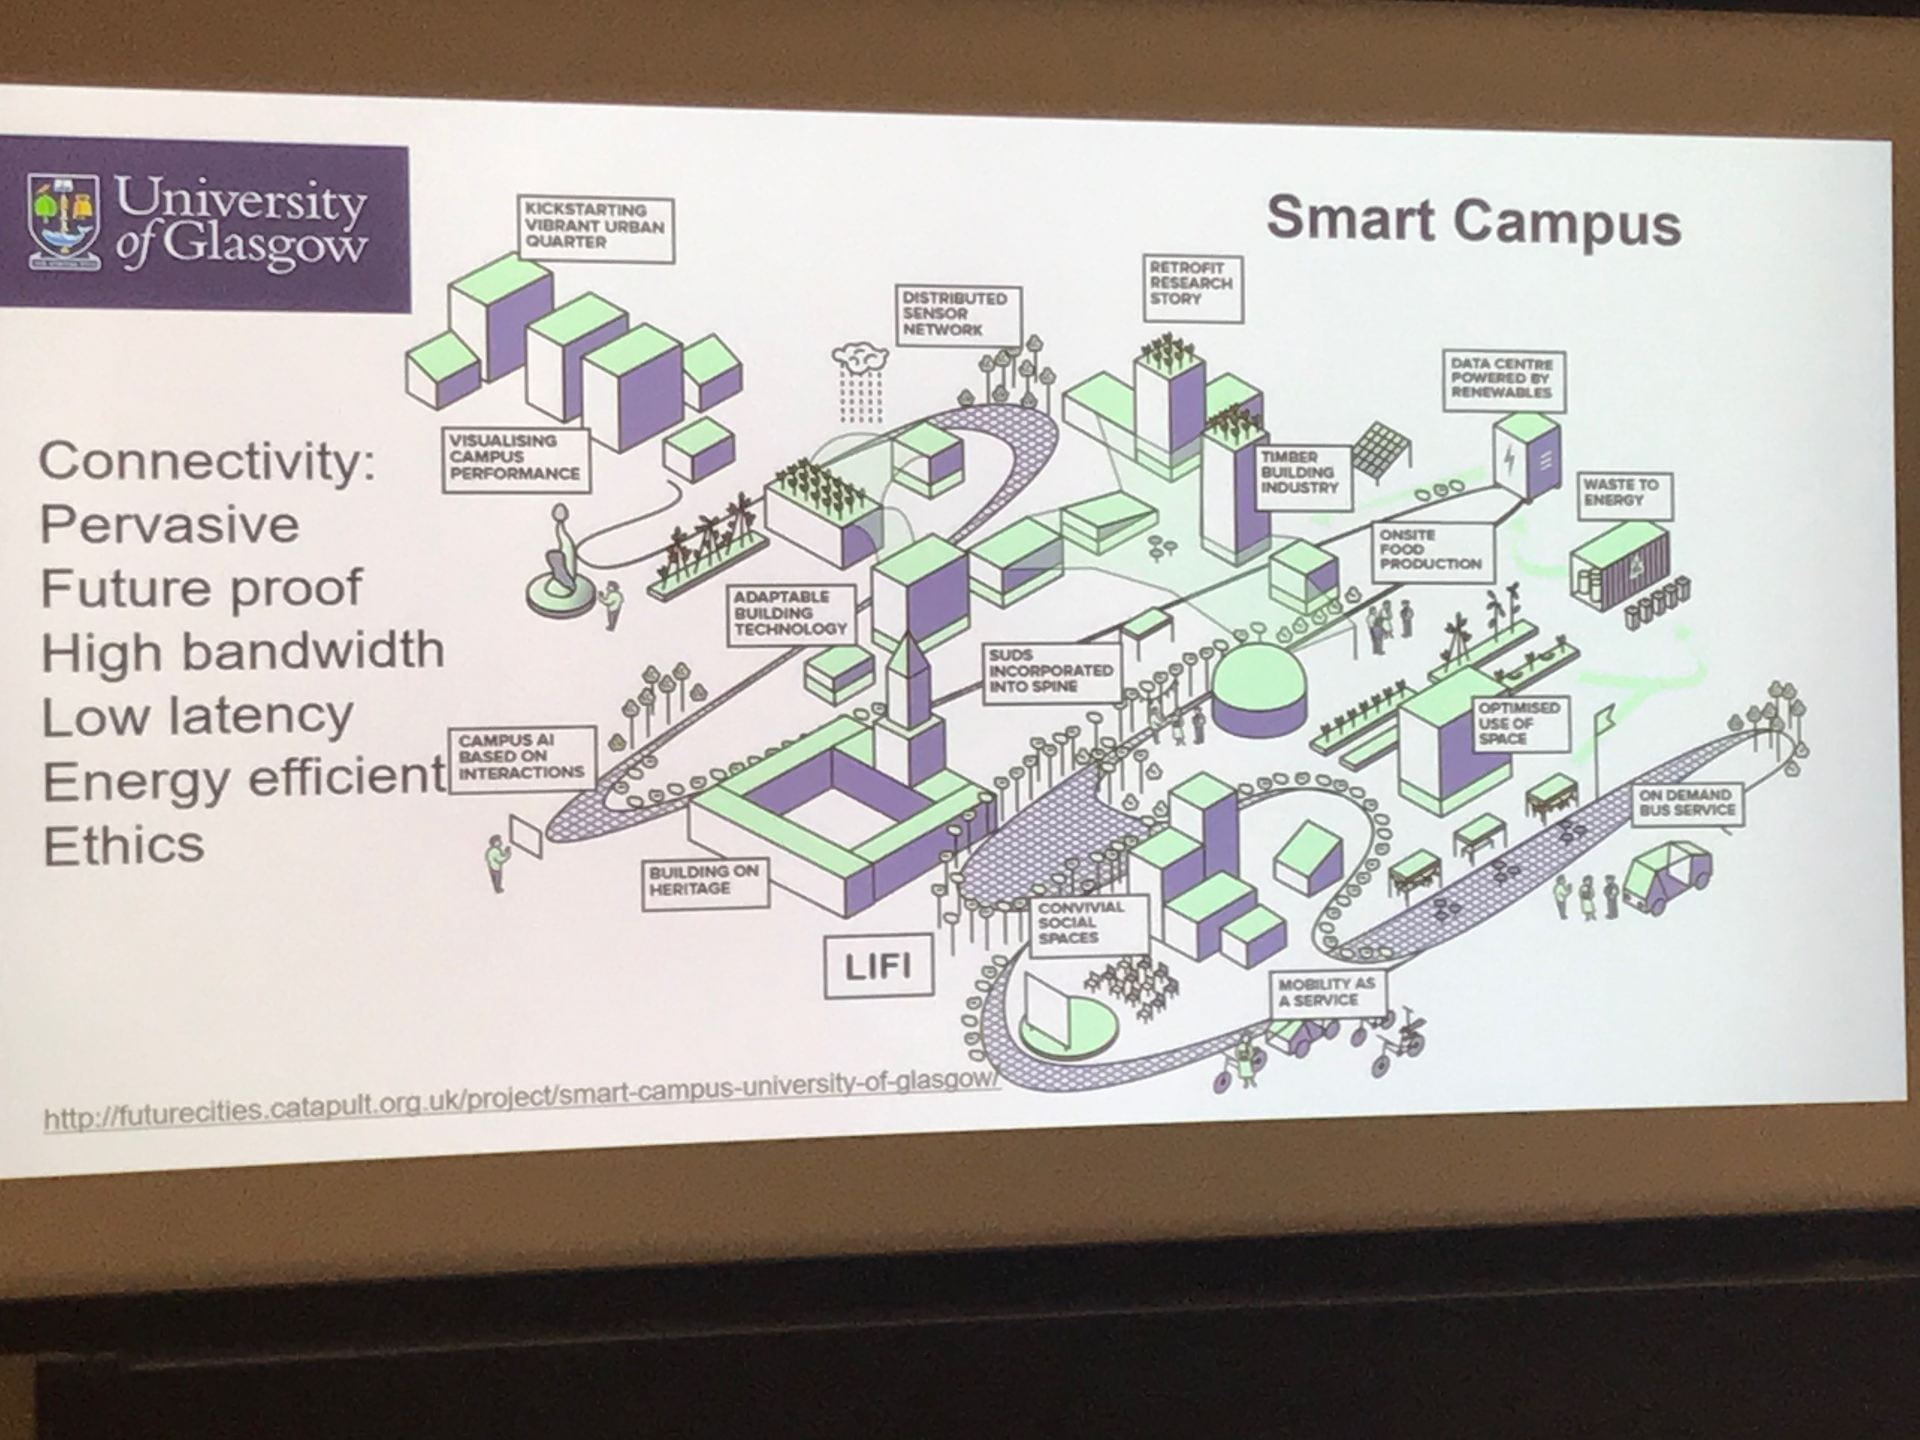 Slide showing diagram of the University of Glasgow's smart campus vision.